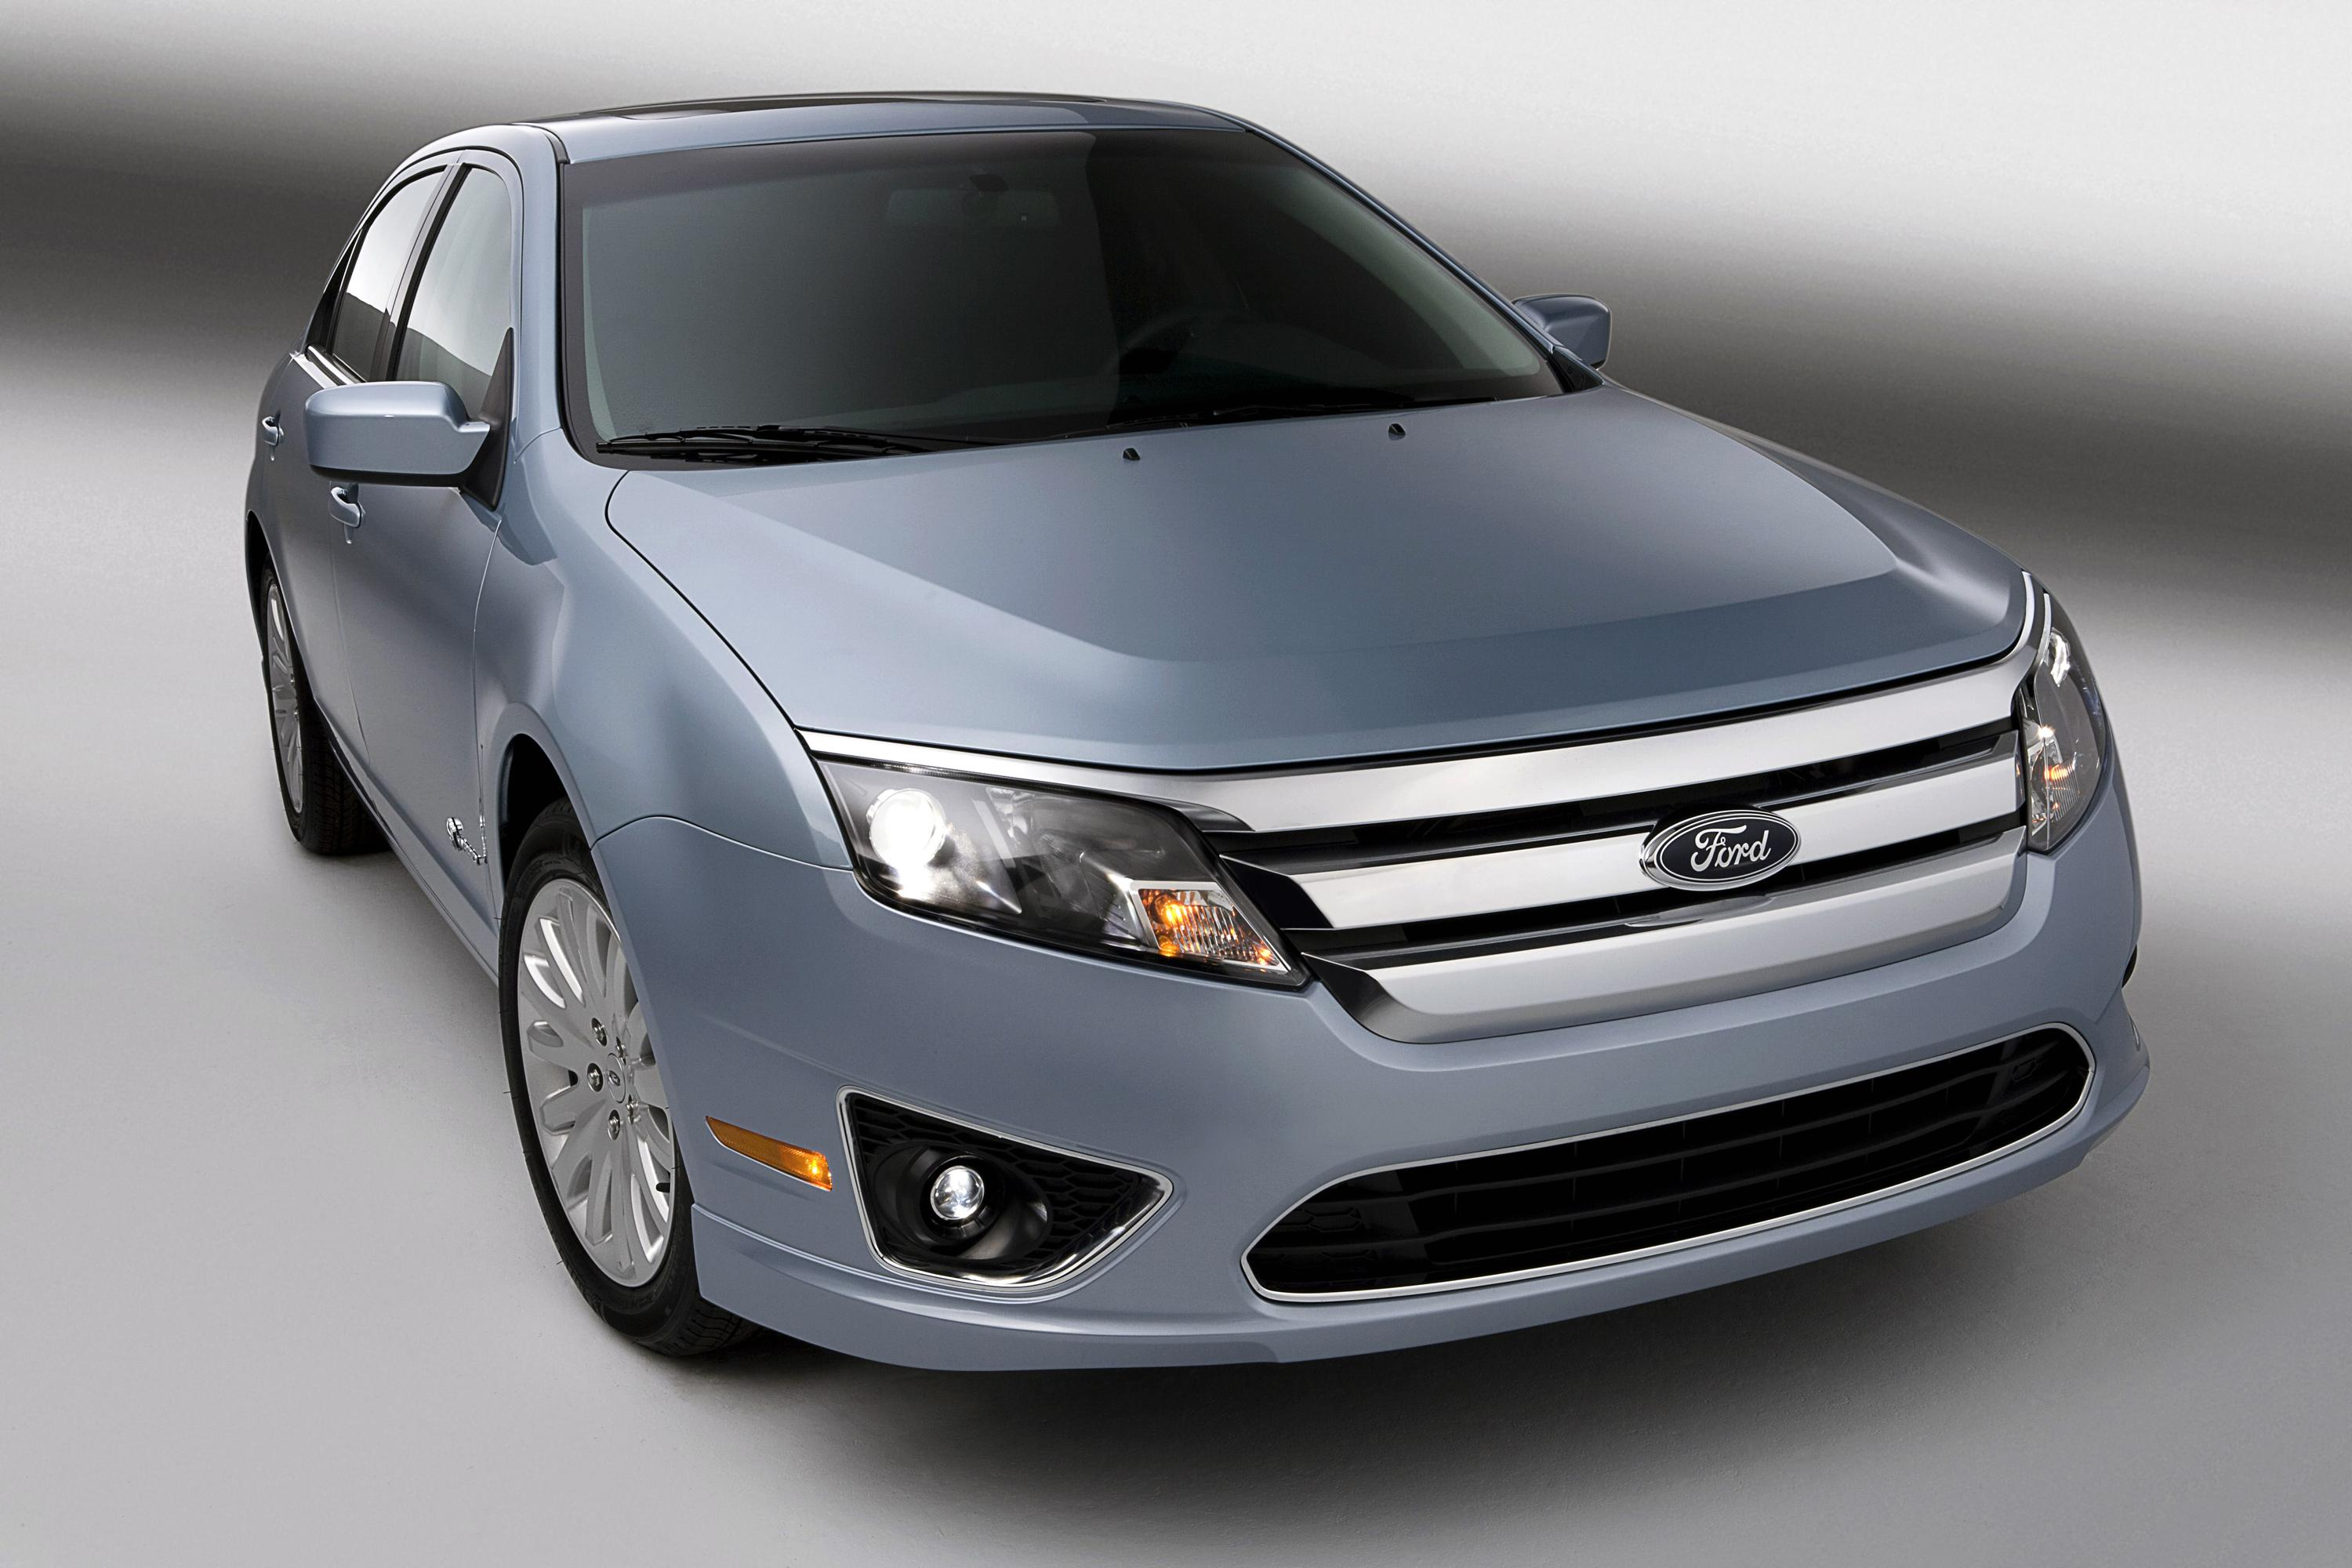 2010 Ford Fusion | Top Speed. »